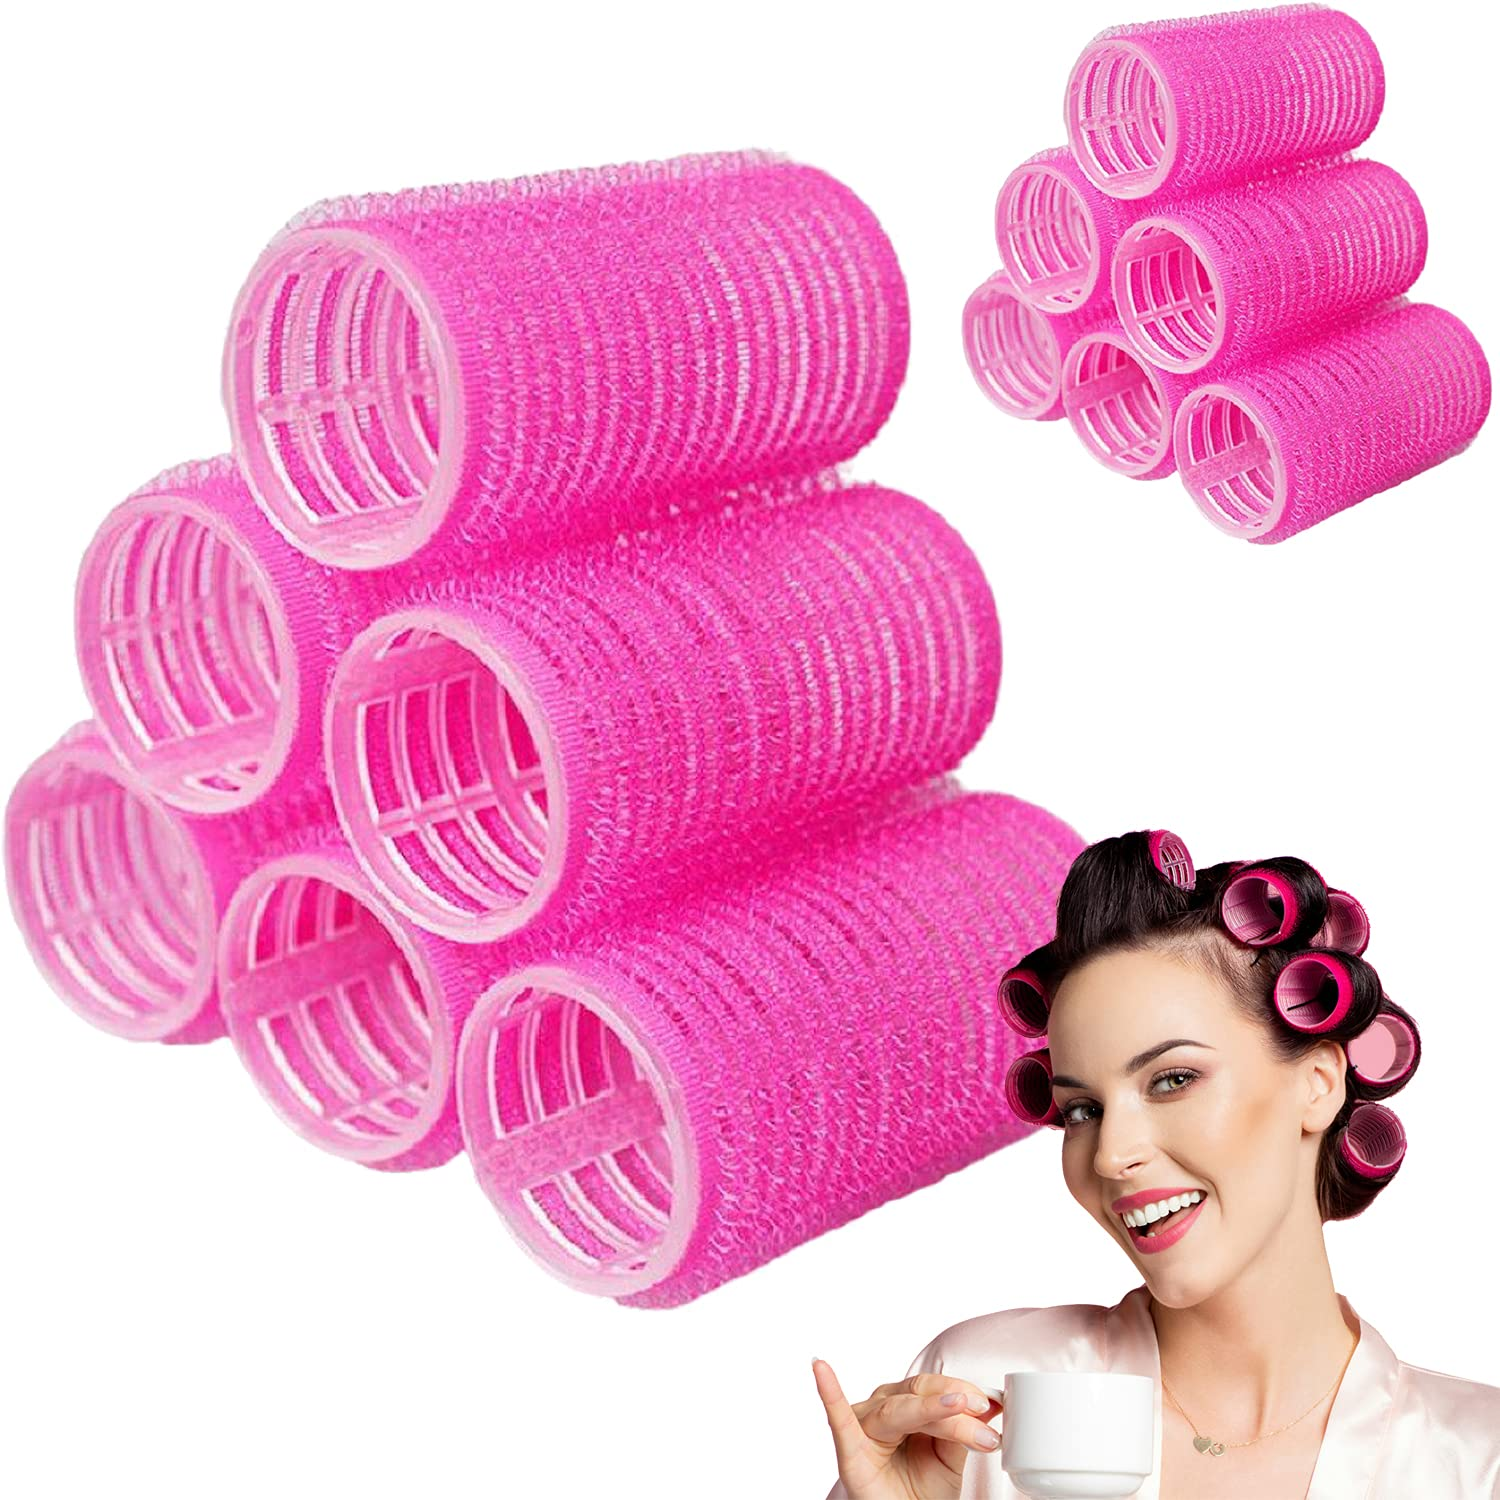 Hair Rollers National 5 ☆ very popular uniform free shipping 12 Pack Self Curlers DIY Salon Hairdressing Grip